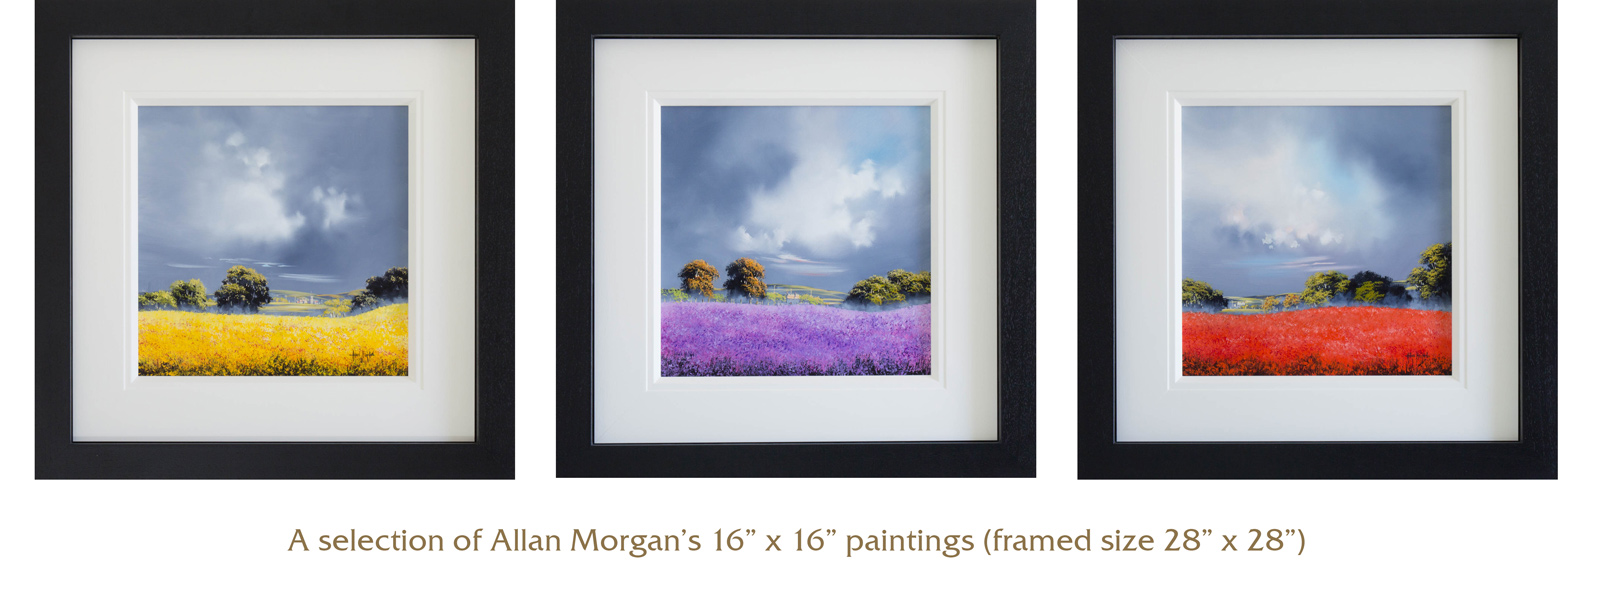 Allan Morgan Small Paintings